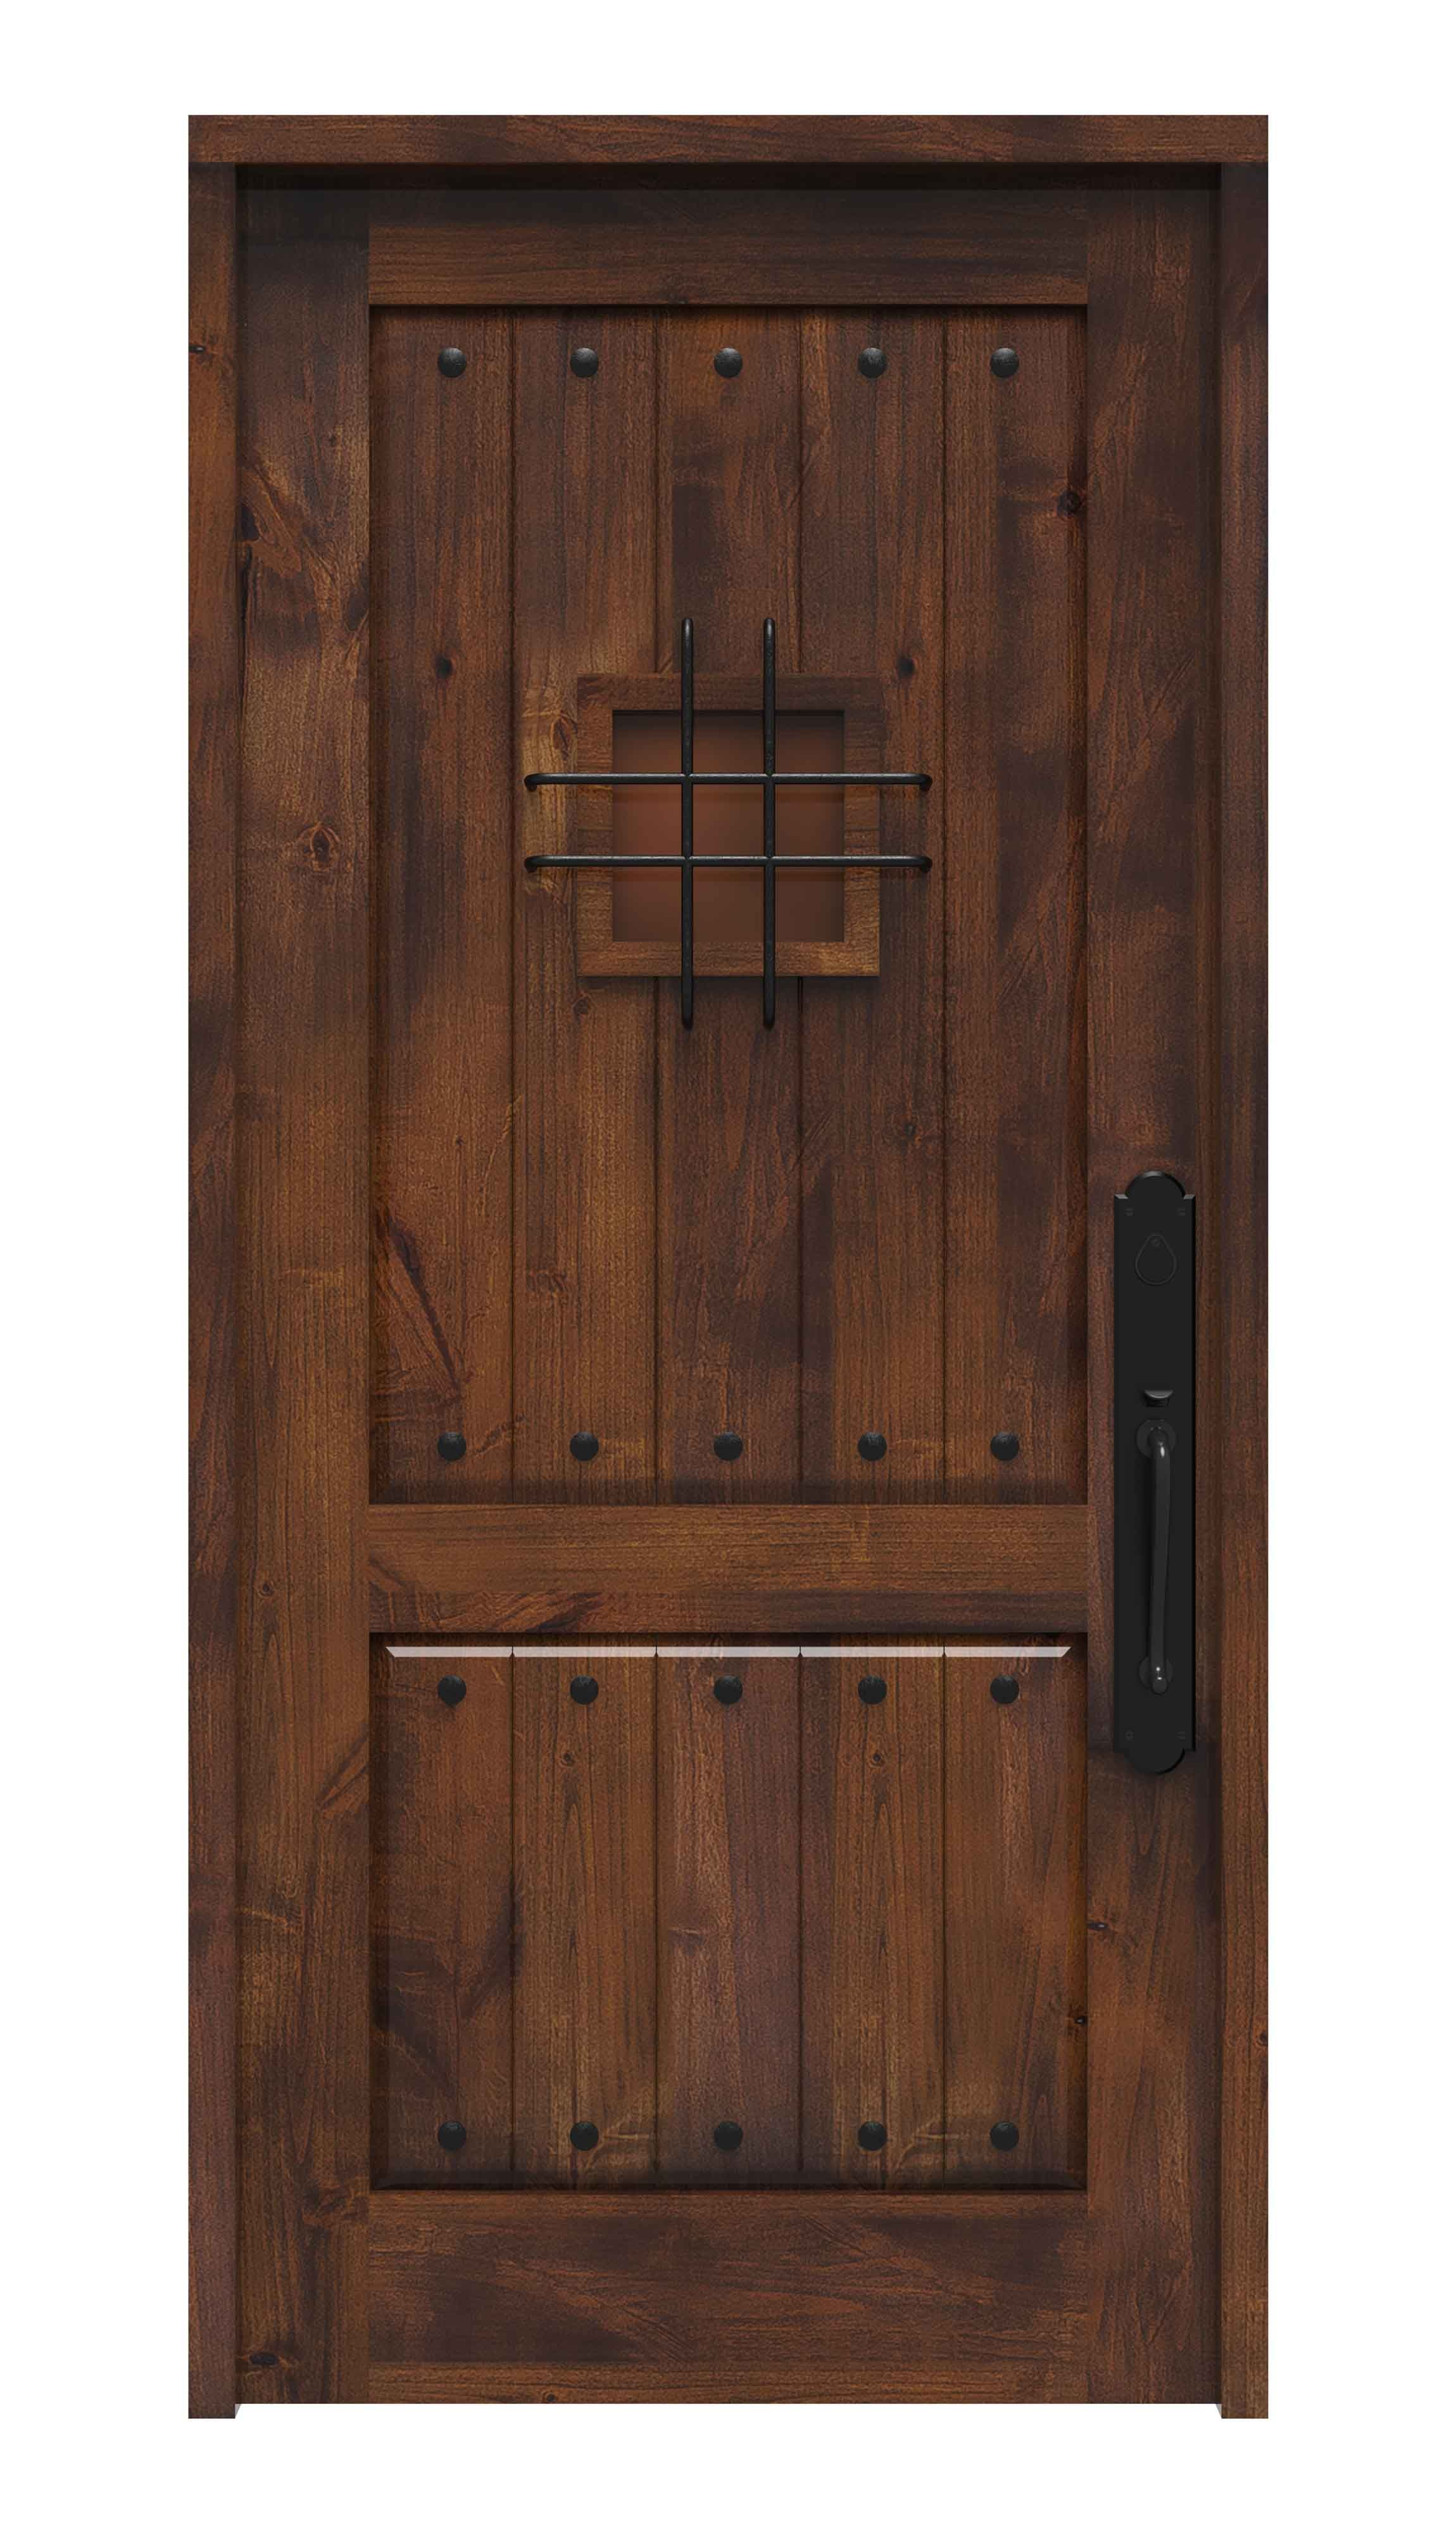 Add A Spanish Flavor To Your Home With Rustica S Spanish Style Front Doors Our Solid Wood Doors Co Rustic Front Door Wood Front Entry Doors Custom Front Doors